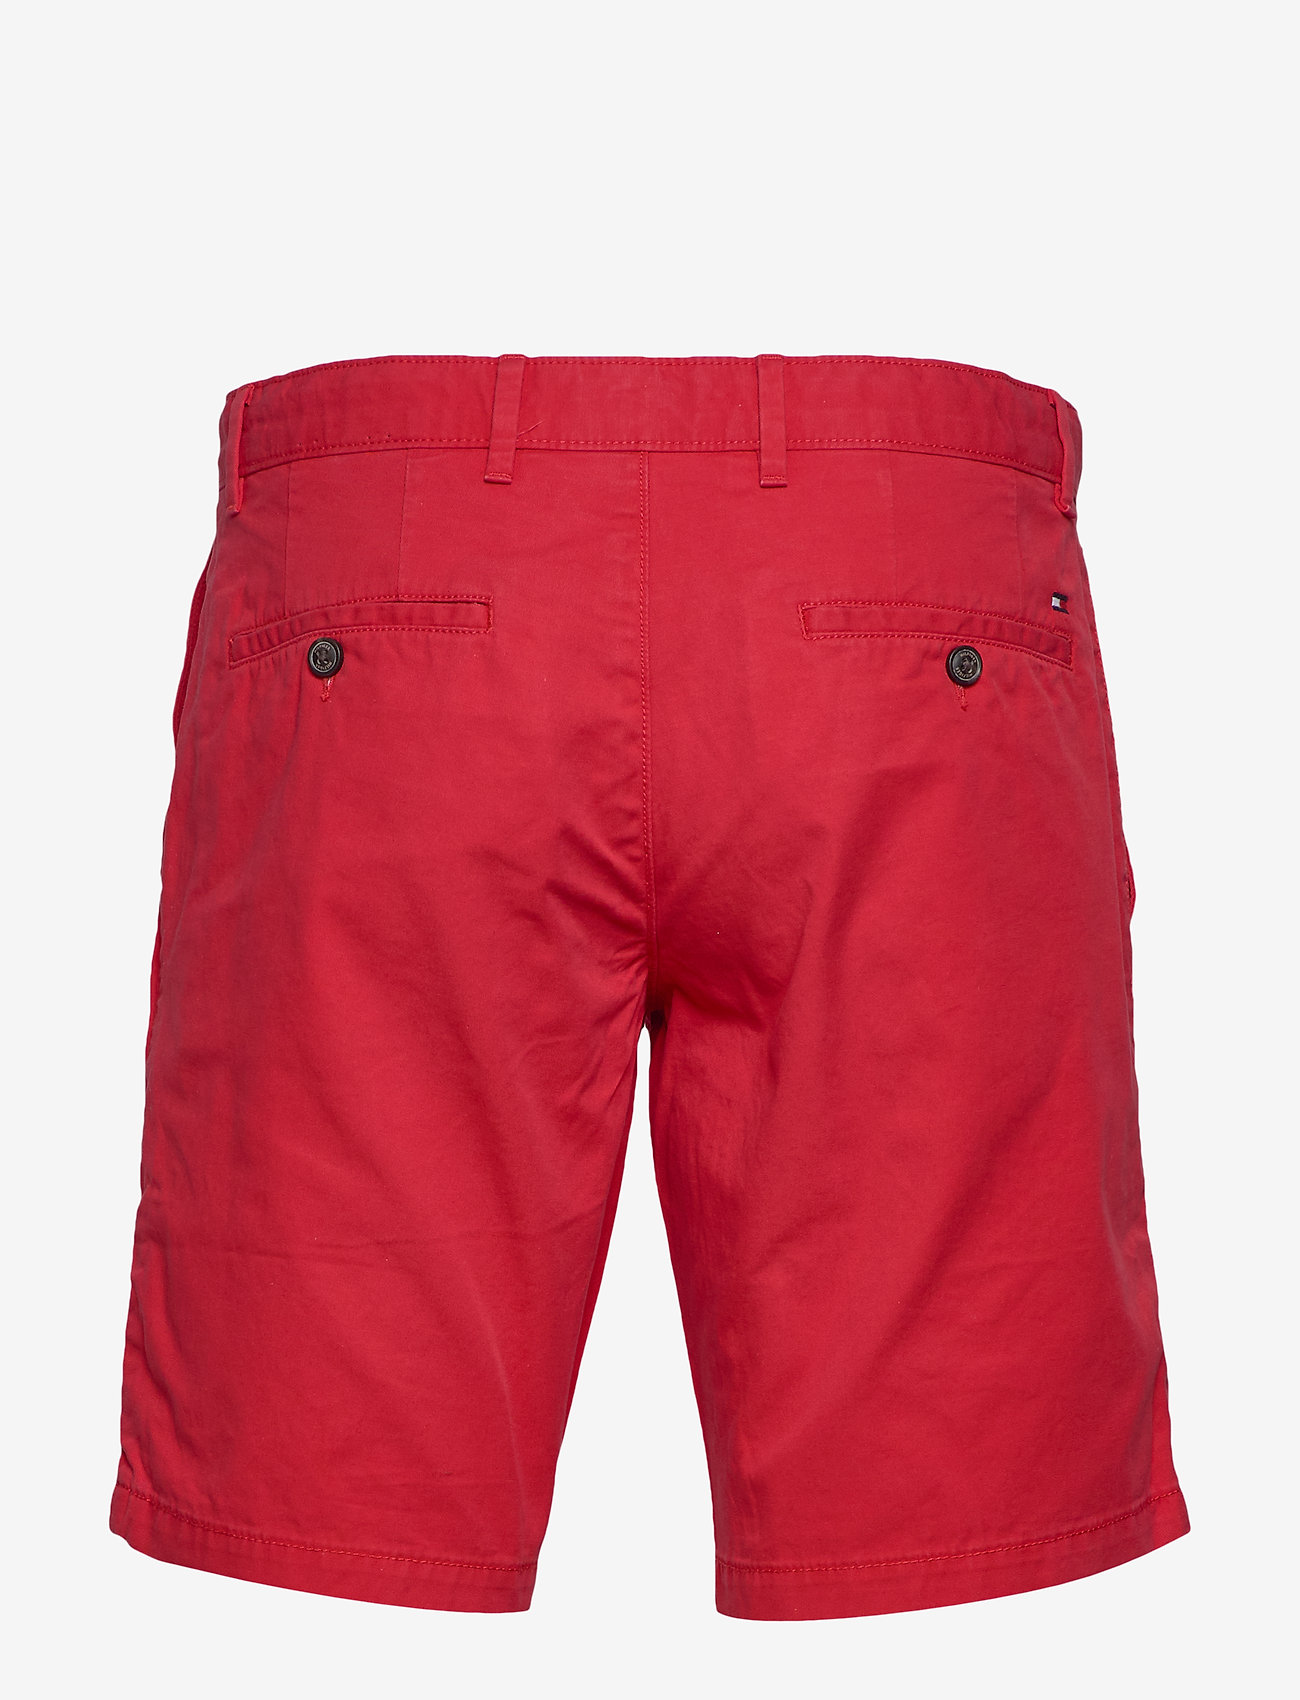 Tommy Hilfiger - BROOKLYN SHORT LIGHT TWILL - chinos shorts - primary red - 1